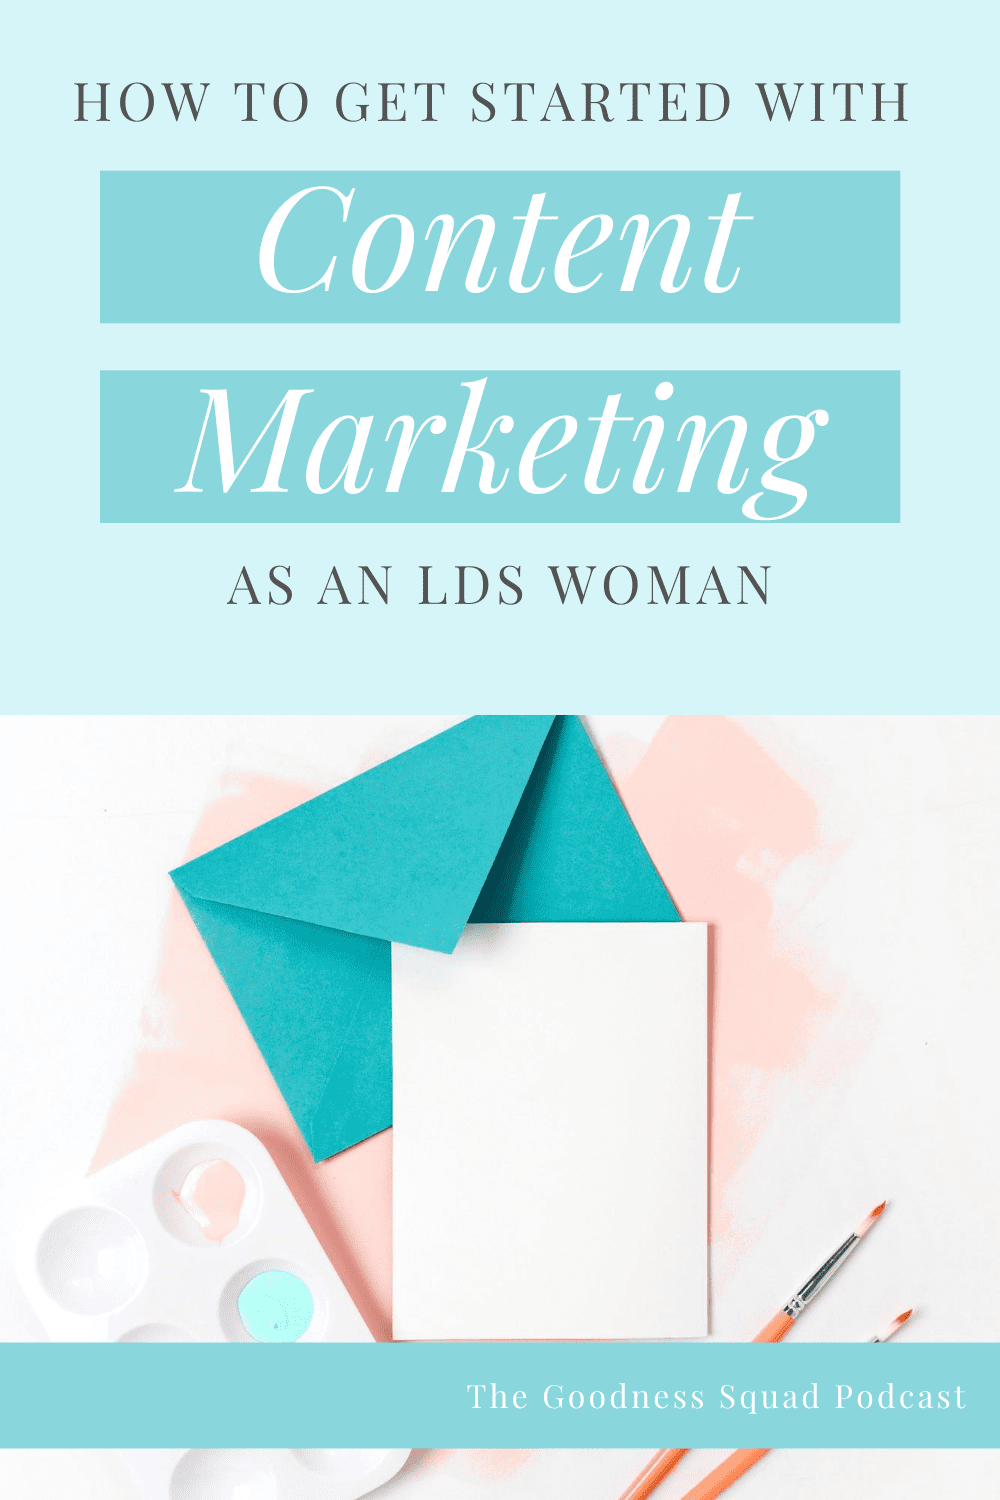 031_Why content marketing is a good match for LDS women